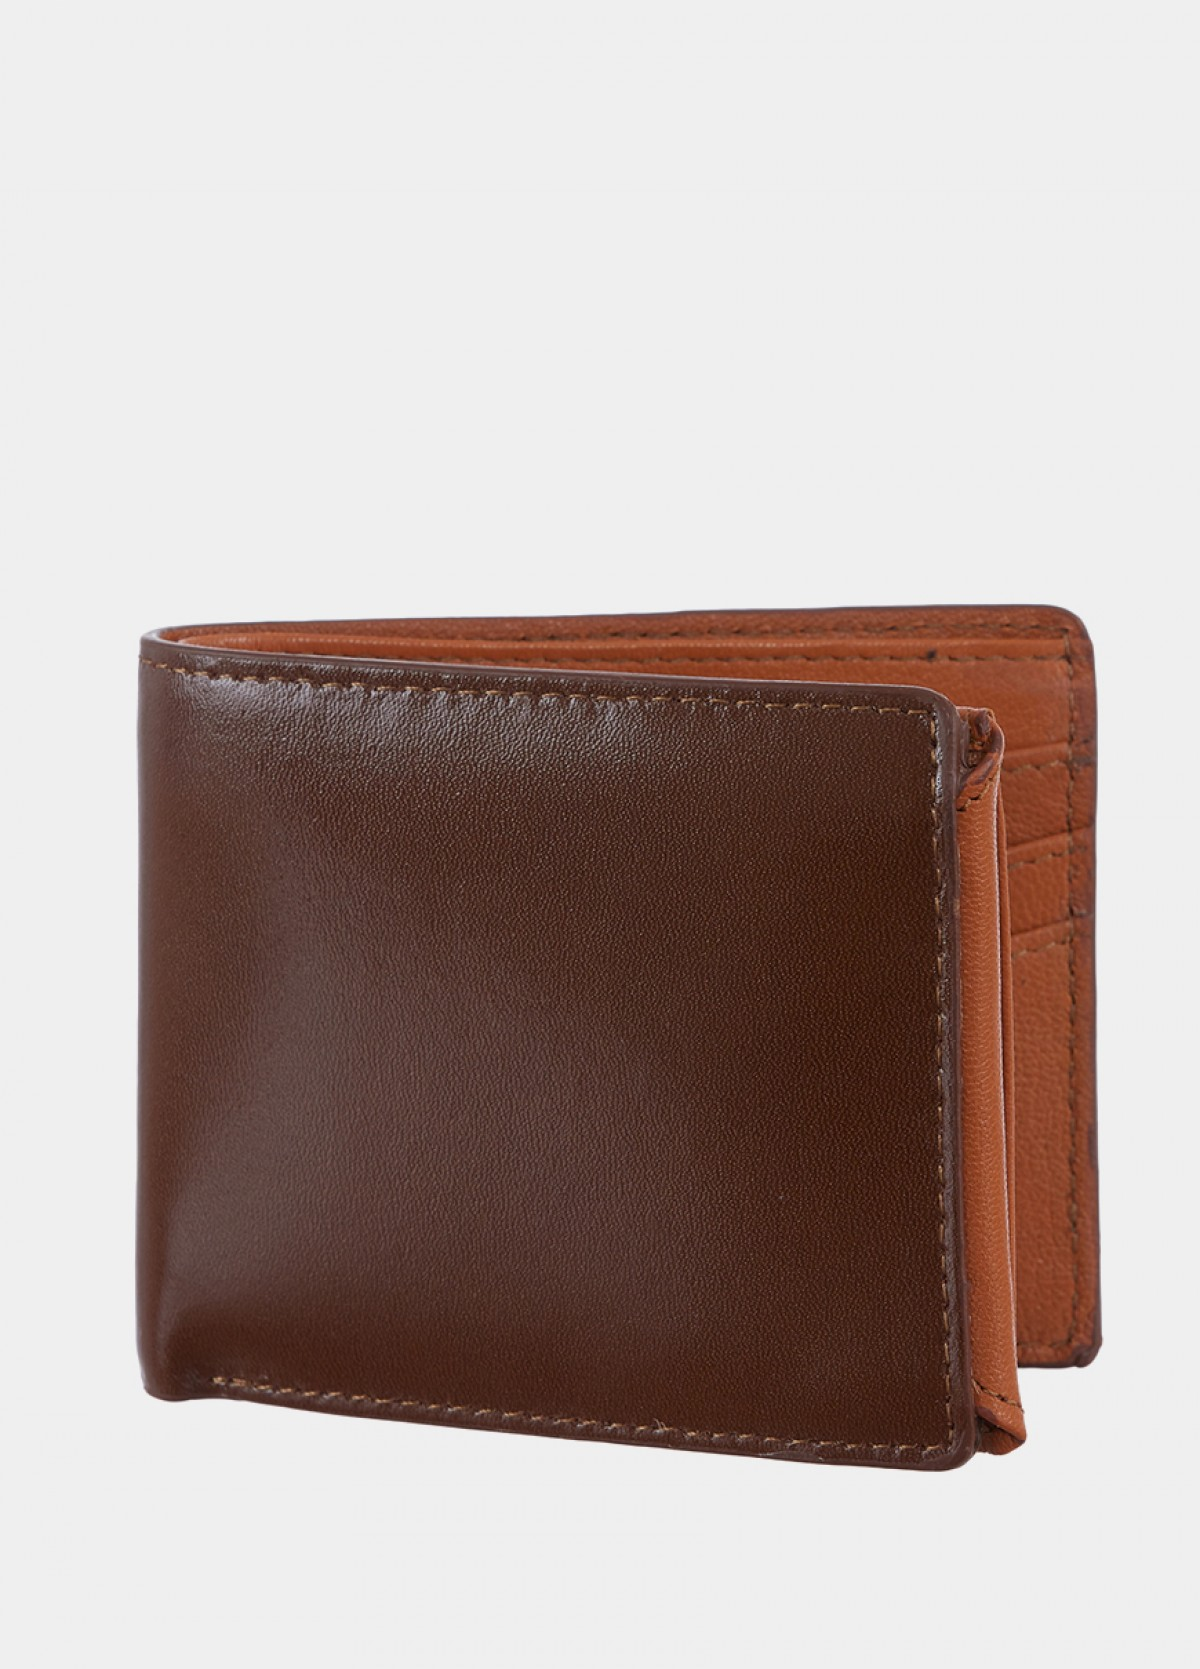 The Brown Leather Men Wallet